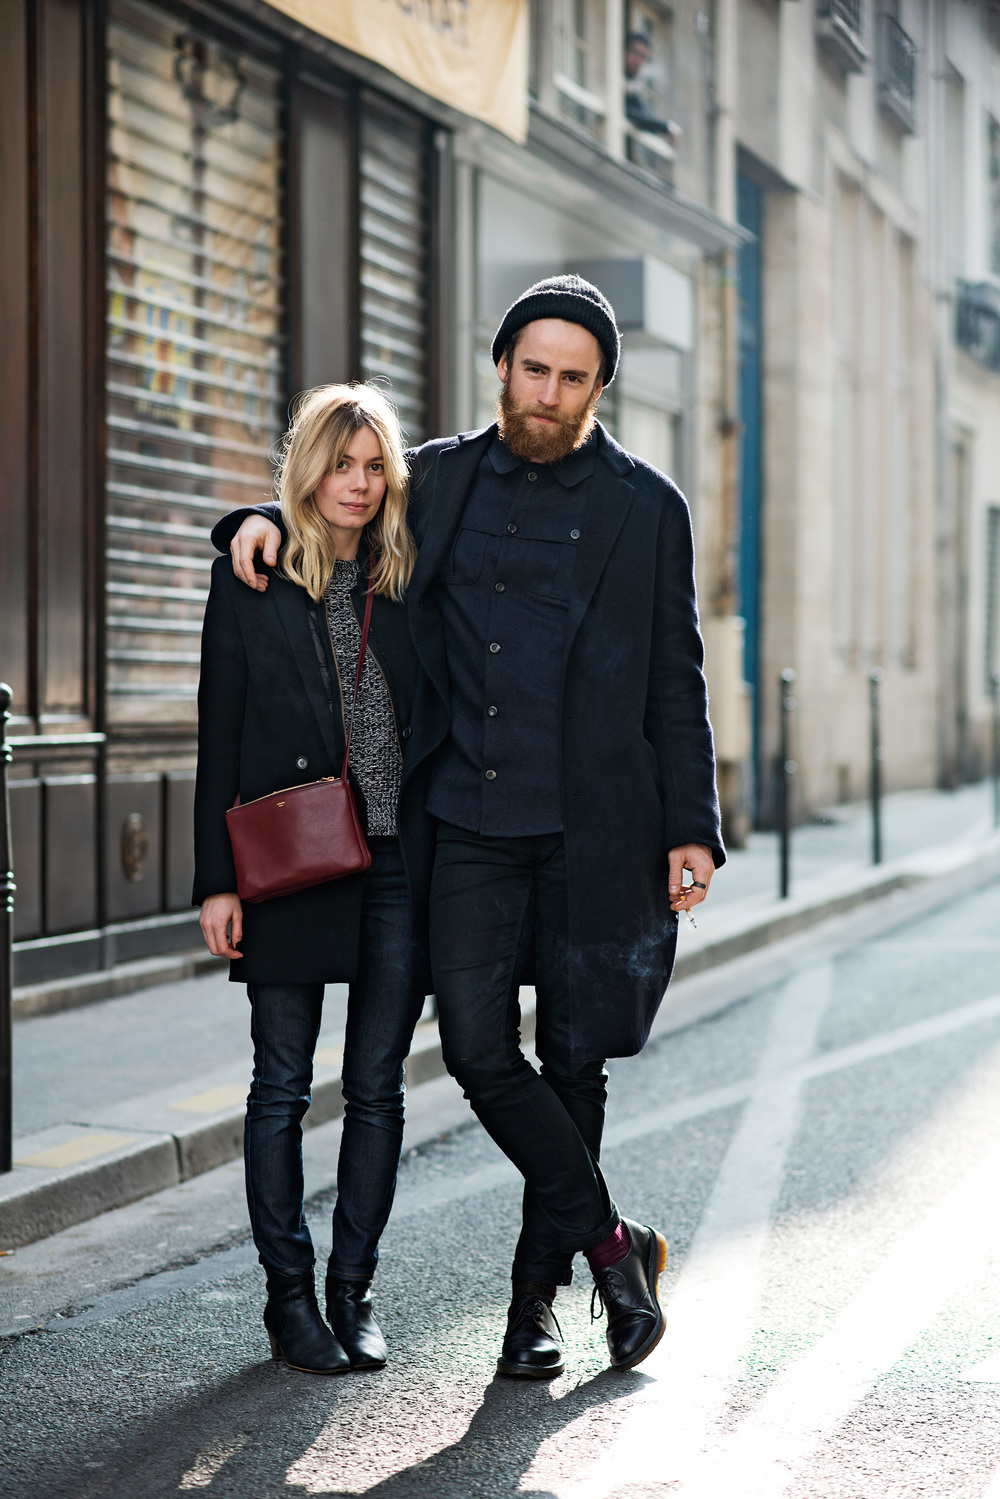 spring love the locals street style from copenhagen and elsewhere